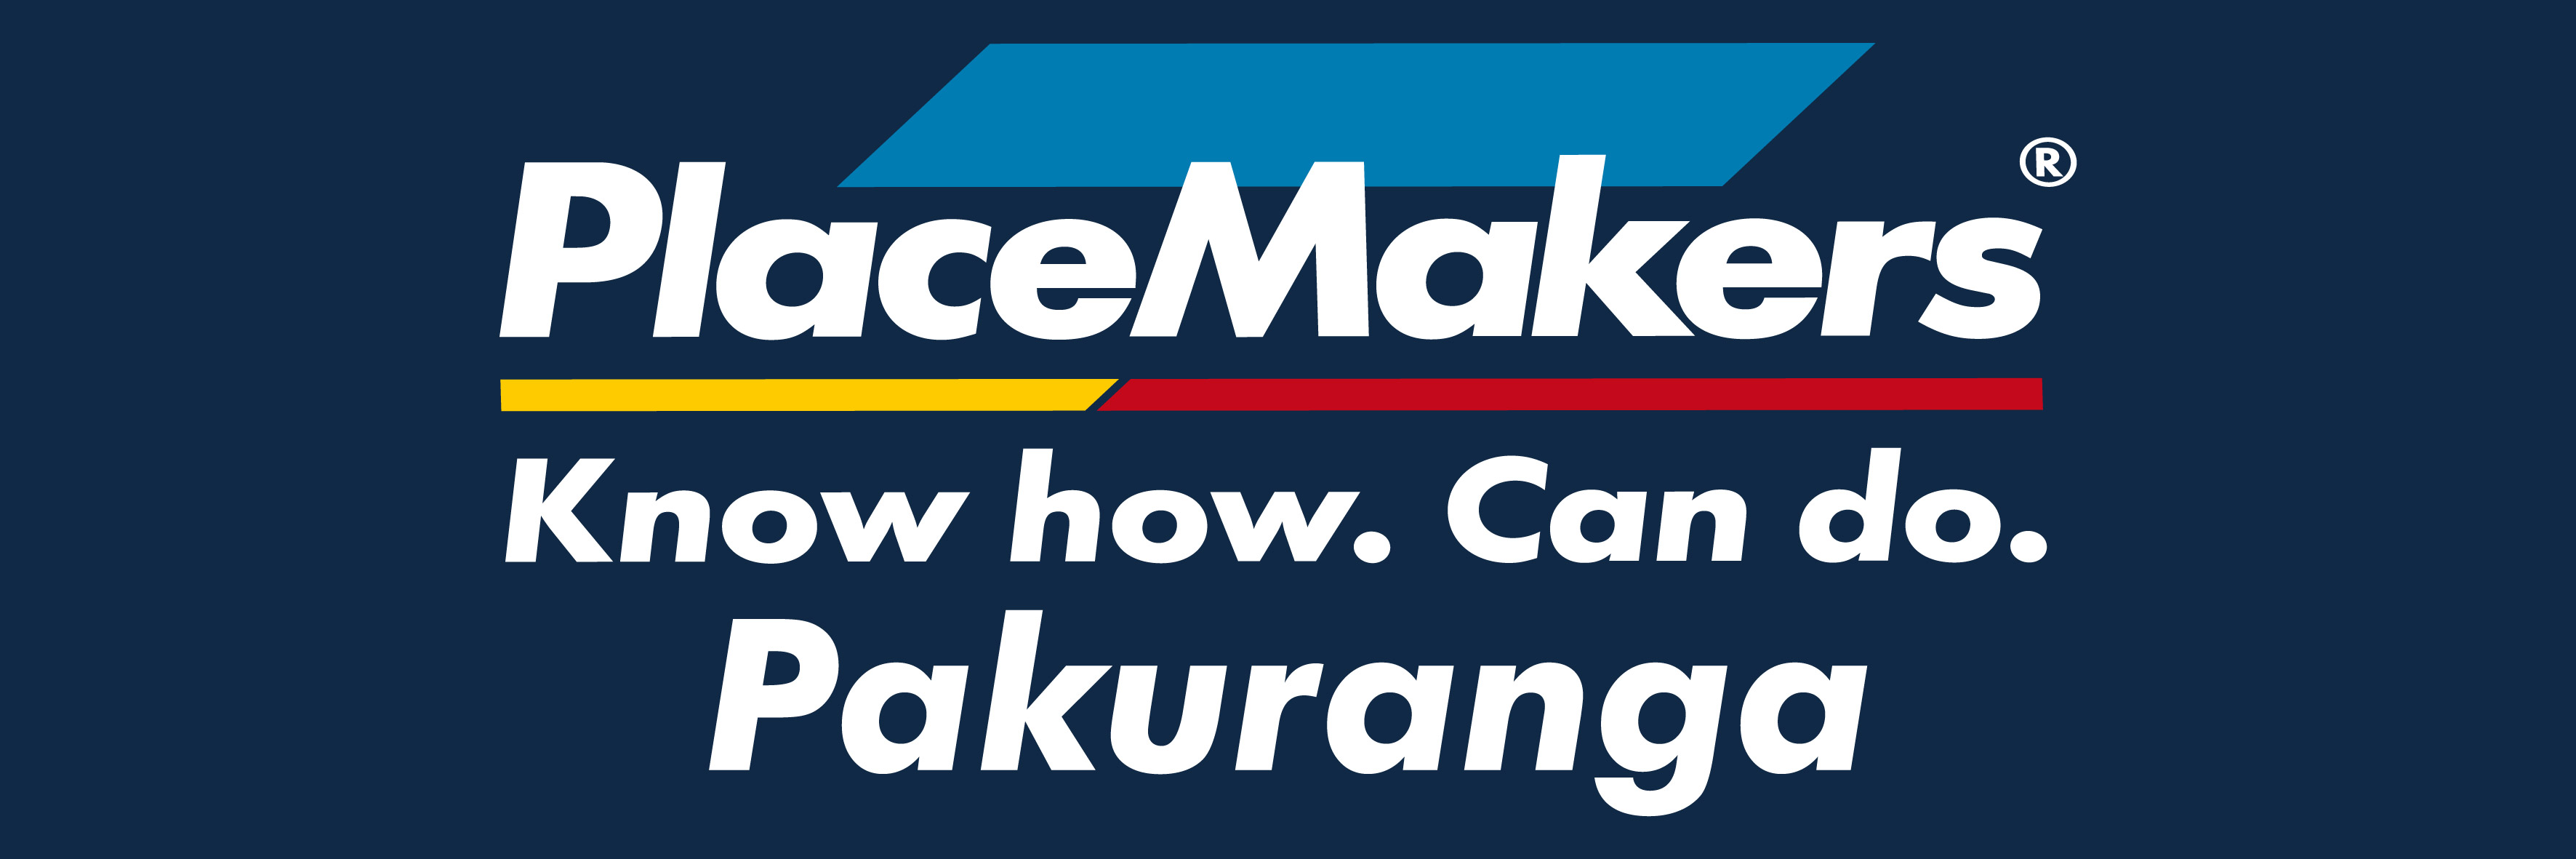 Placemakers Pakuranga Sticker [Converted].jpg